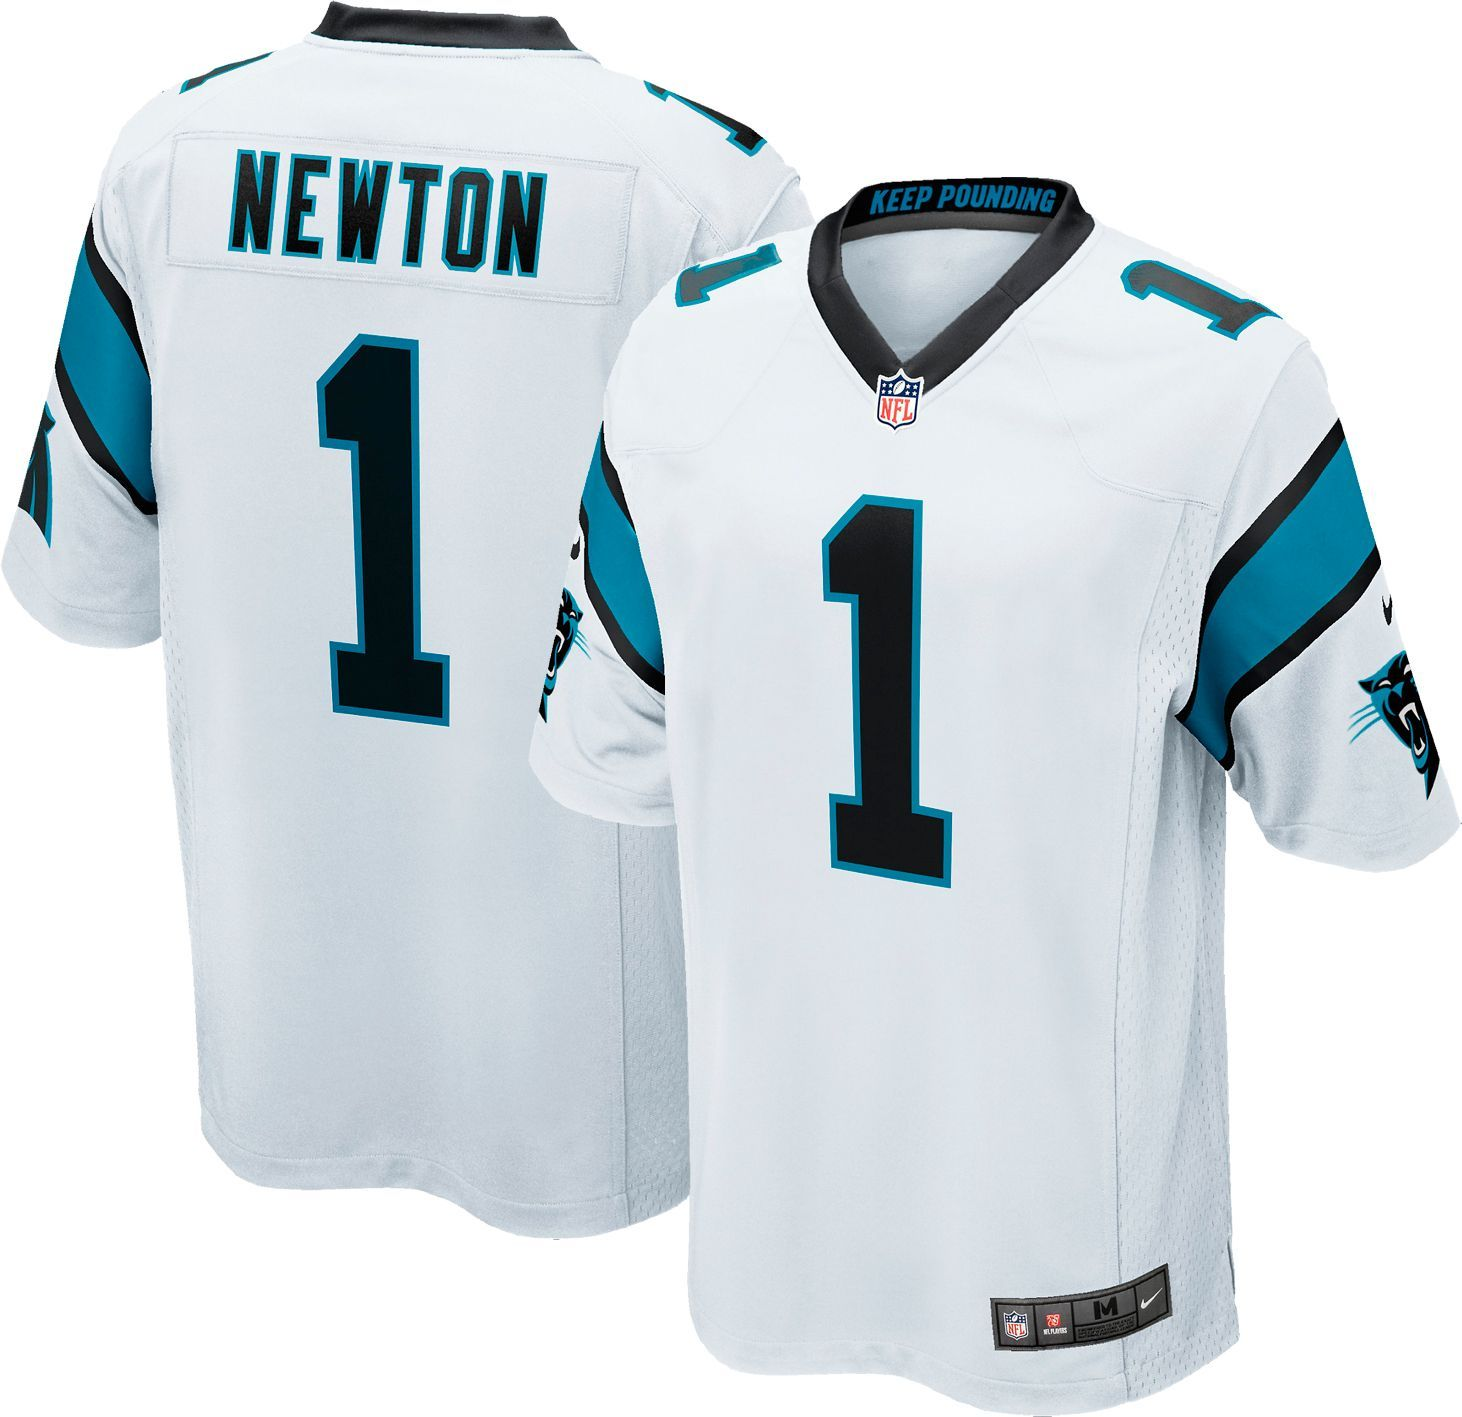 NFL Carolina Panthers T Shirt Mens ALL SIZES Official NFL Team Apparel Jersey